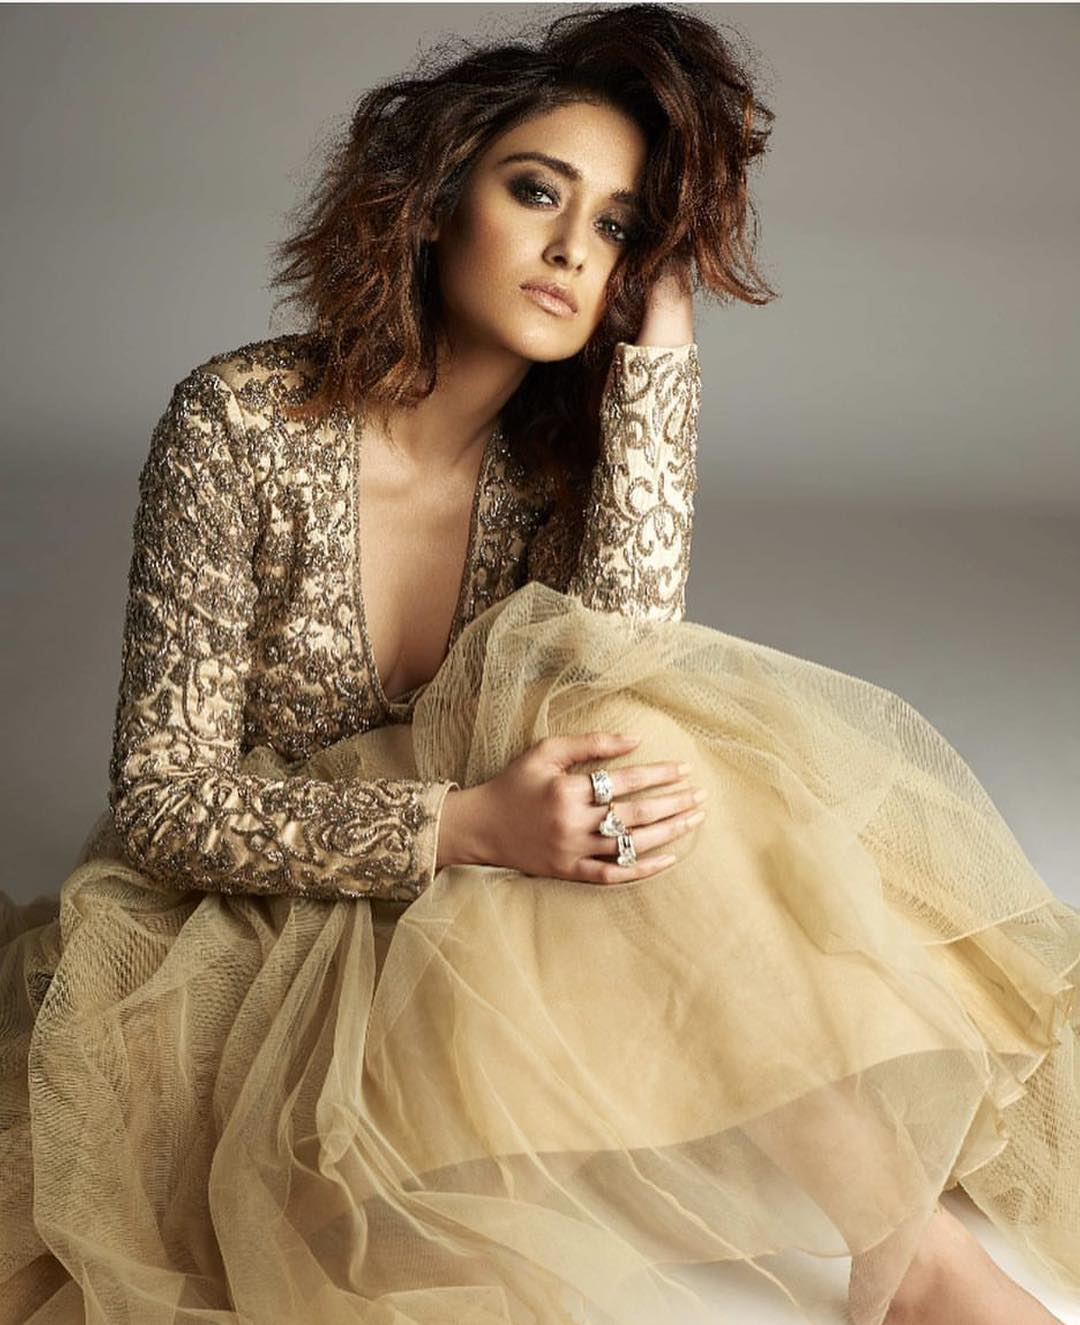 Ileana Photos | Ileana Images Ileana Pictures